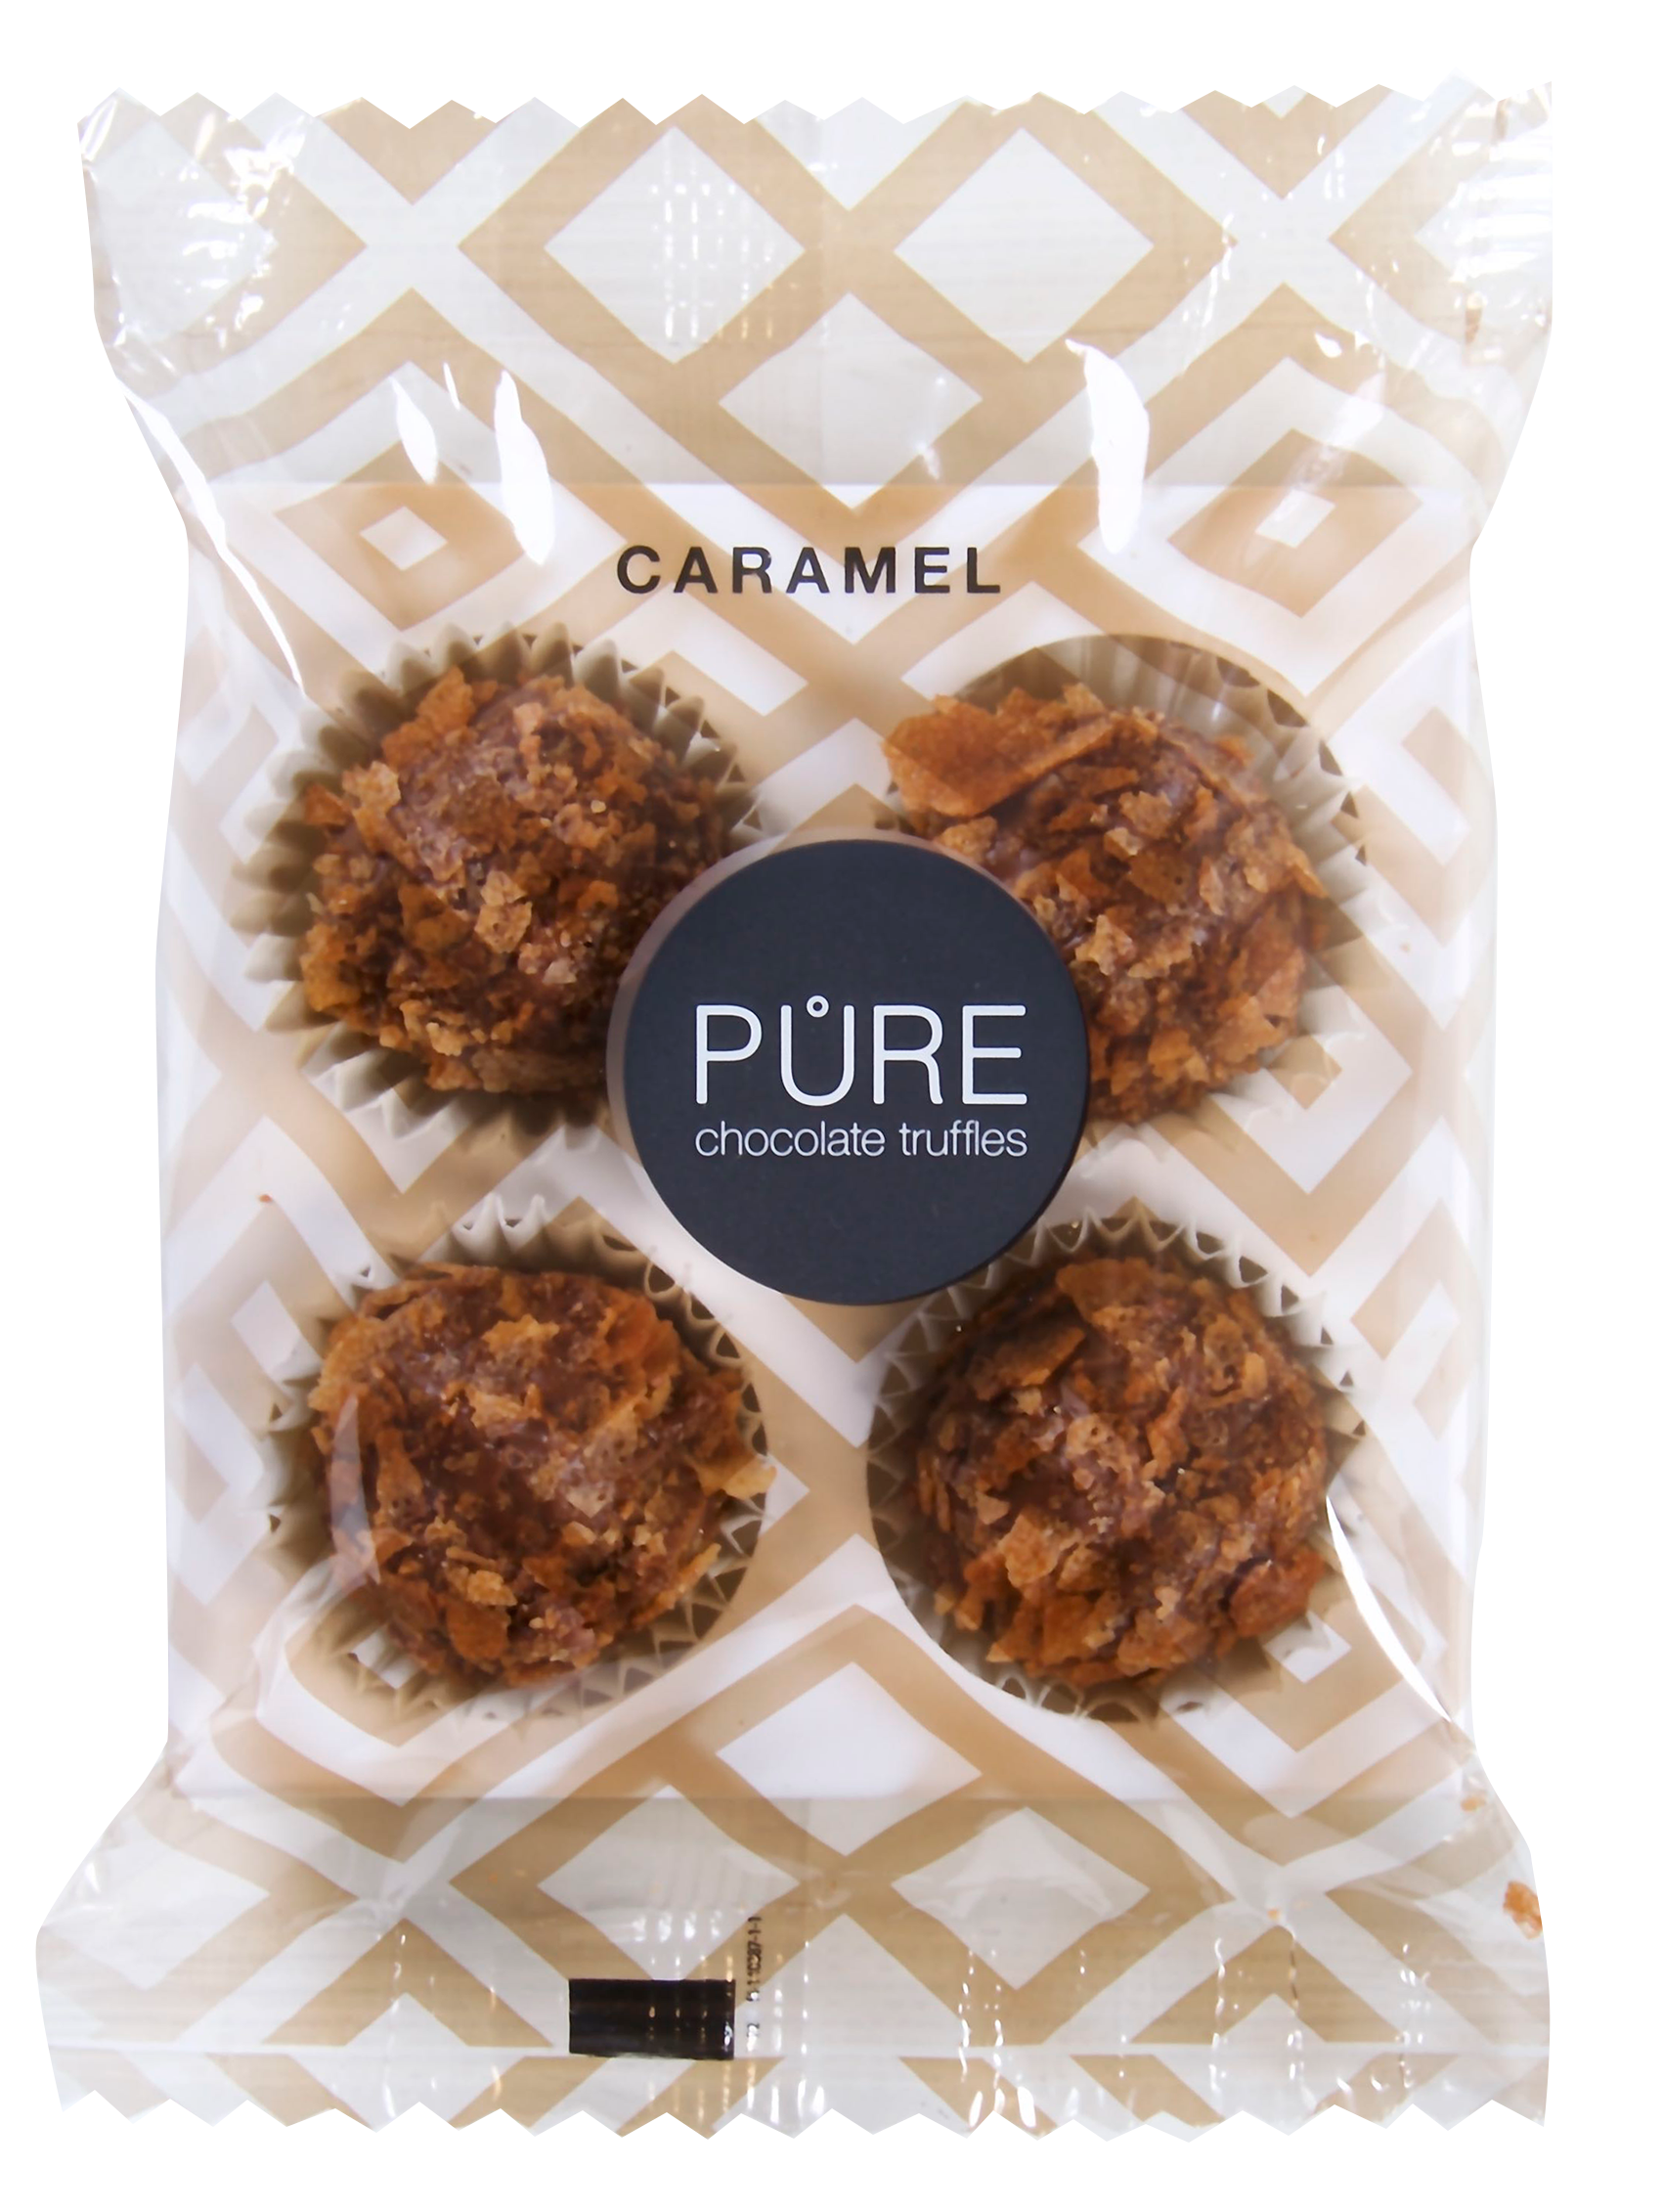 Pure Chocolade Truffels - Caramel on the go